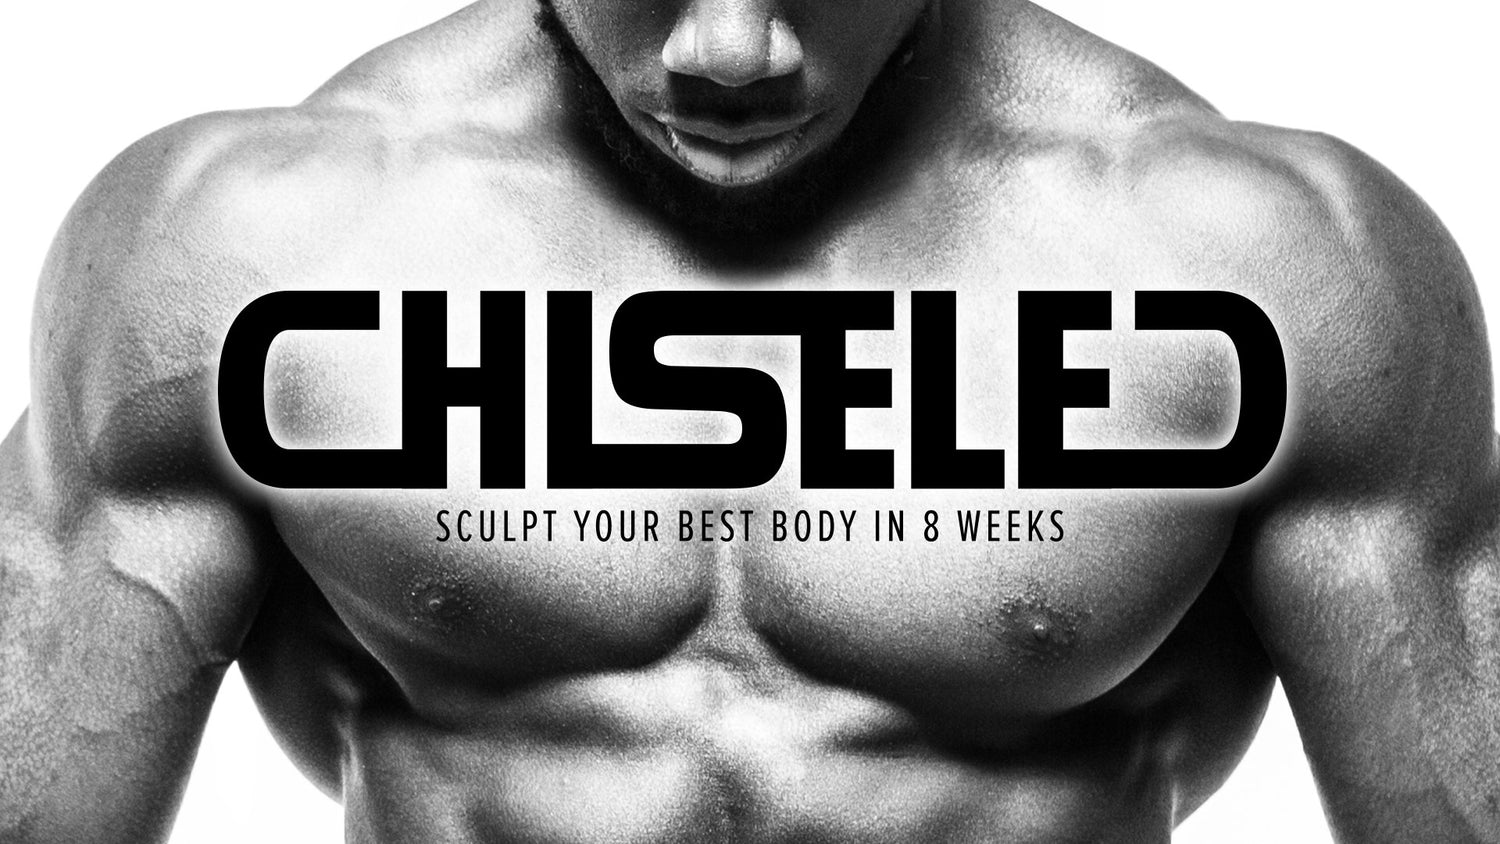 RSP Chiseled Workout Plan Review